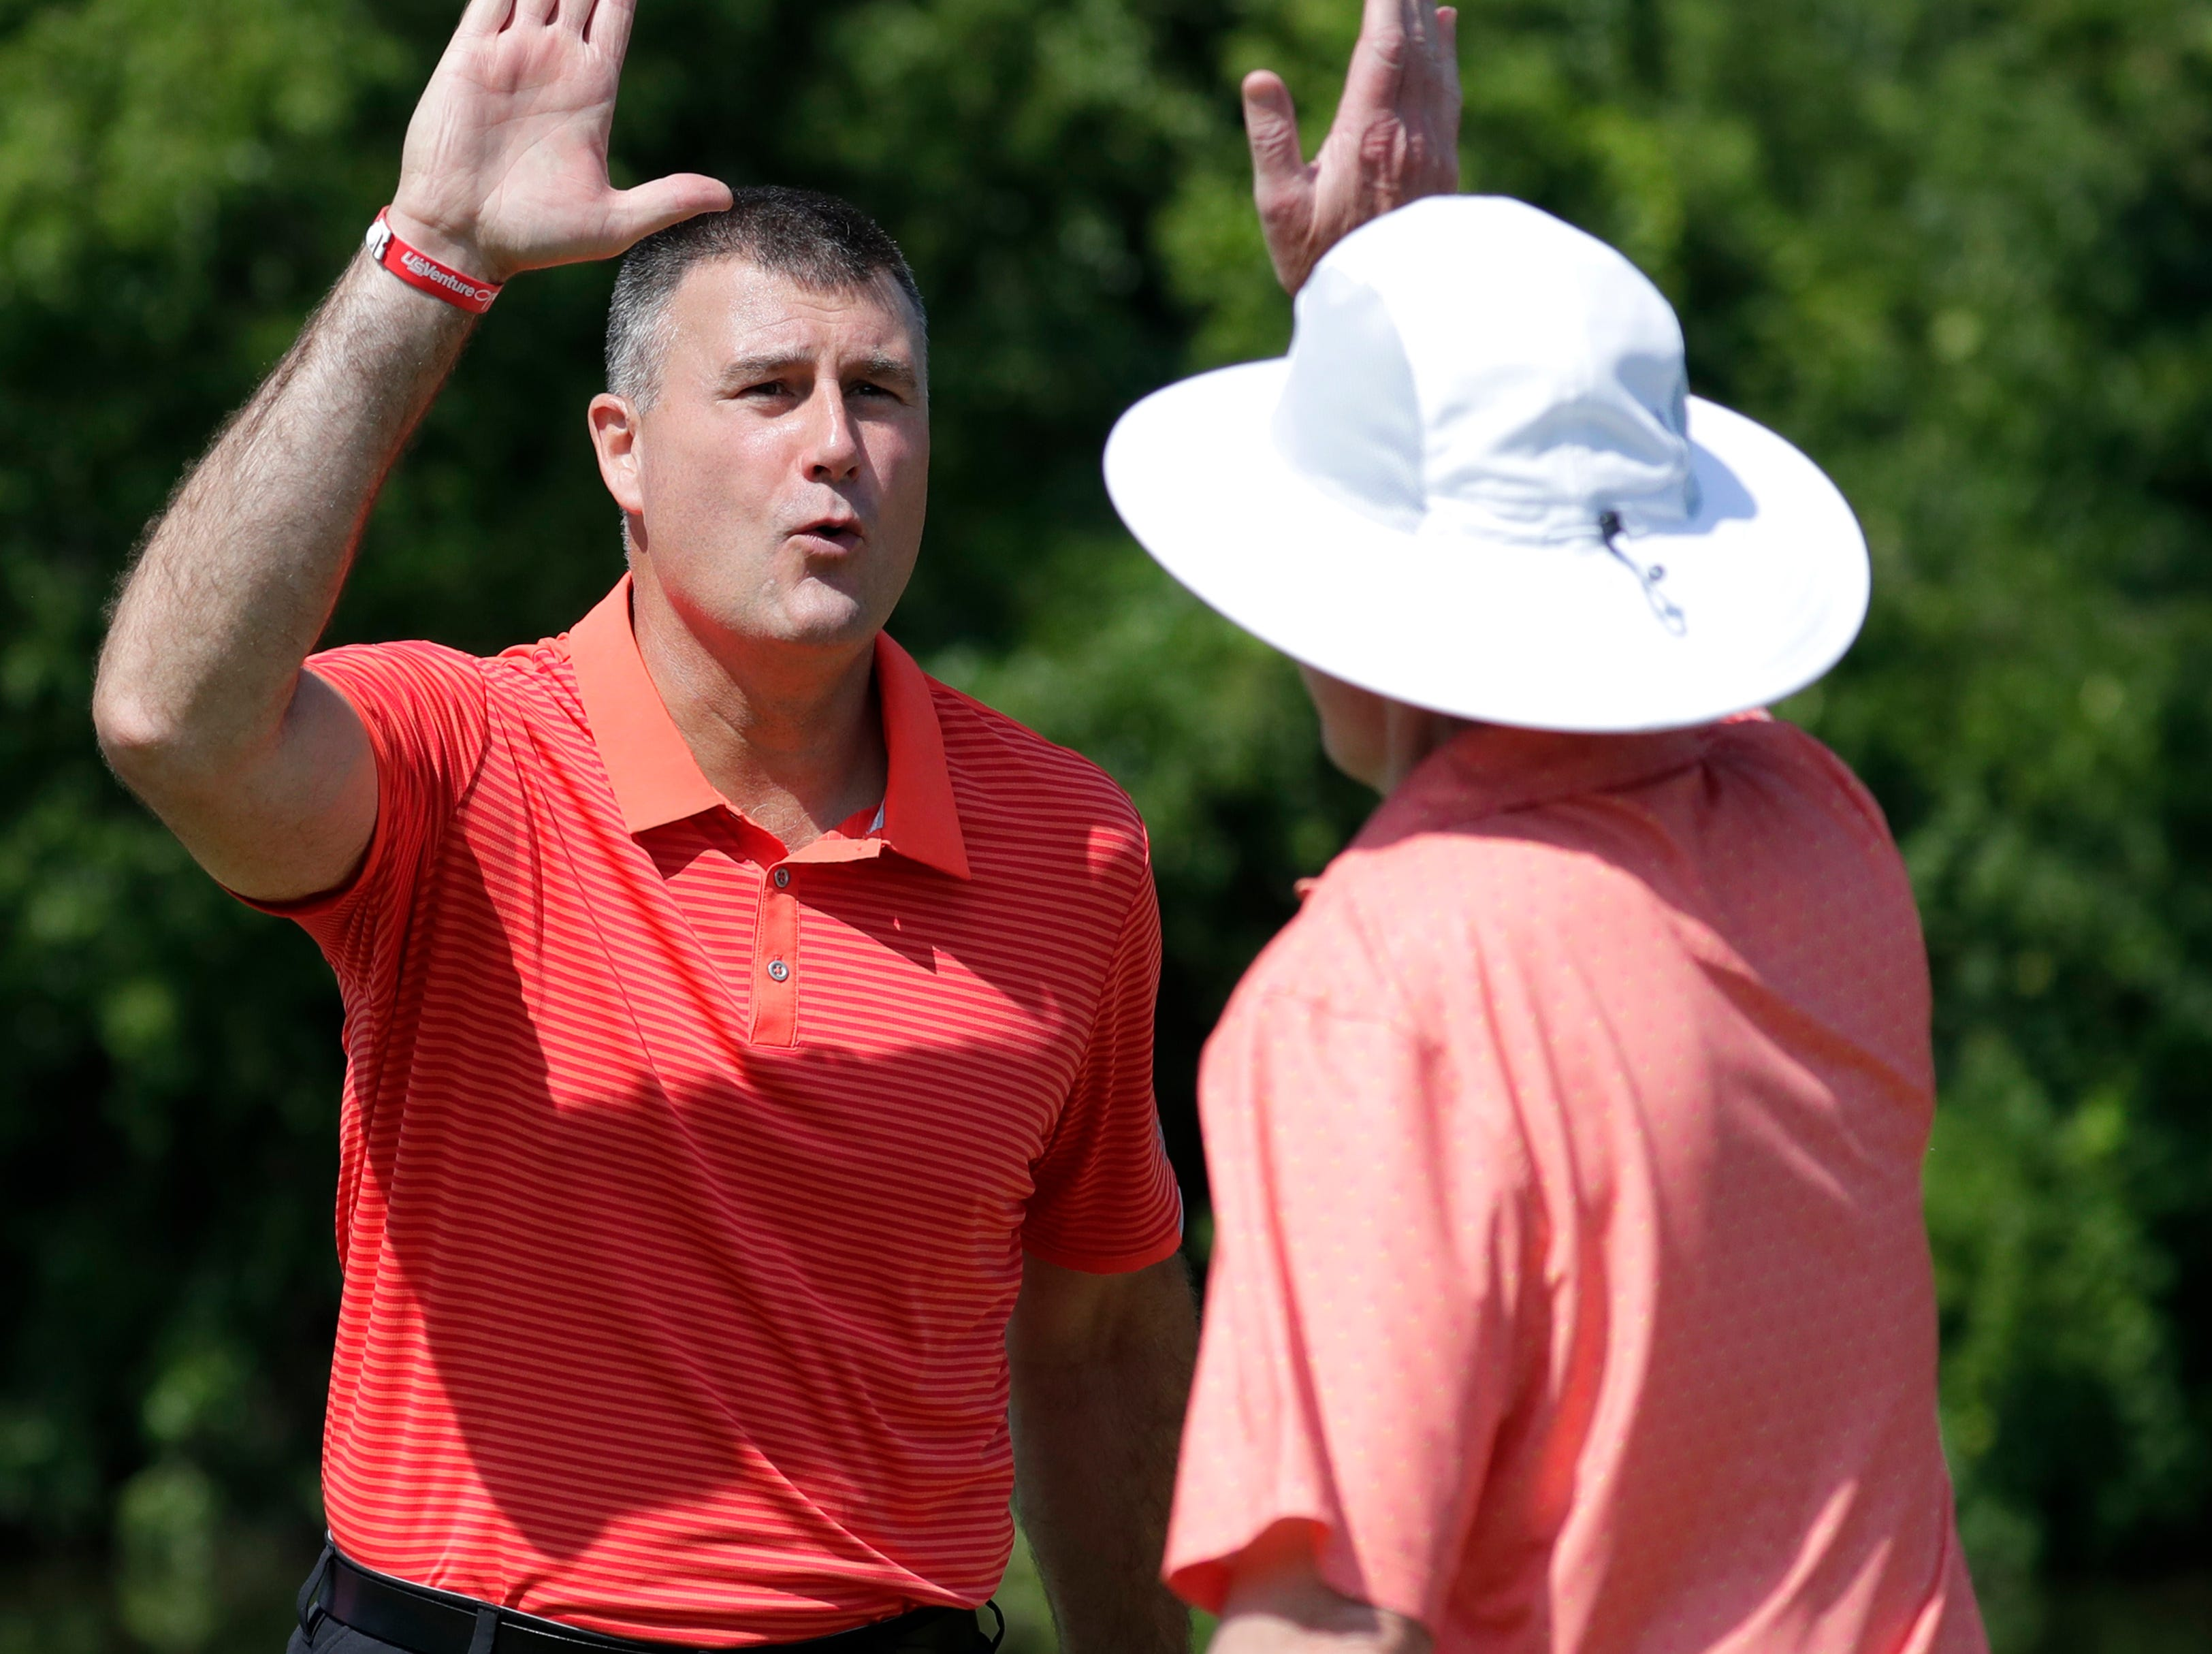 Bill Bohn, left, high fives Pat Hickey, both with Associated Bank, after Hicky sank a putt during the U.S. Venture Open Wednesday, Aug. 8, 2018, at North Shore Golf Club in Menasha, Wis.Danny Damiani/USA TODAY NETWORK-Wisconsin